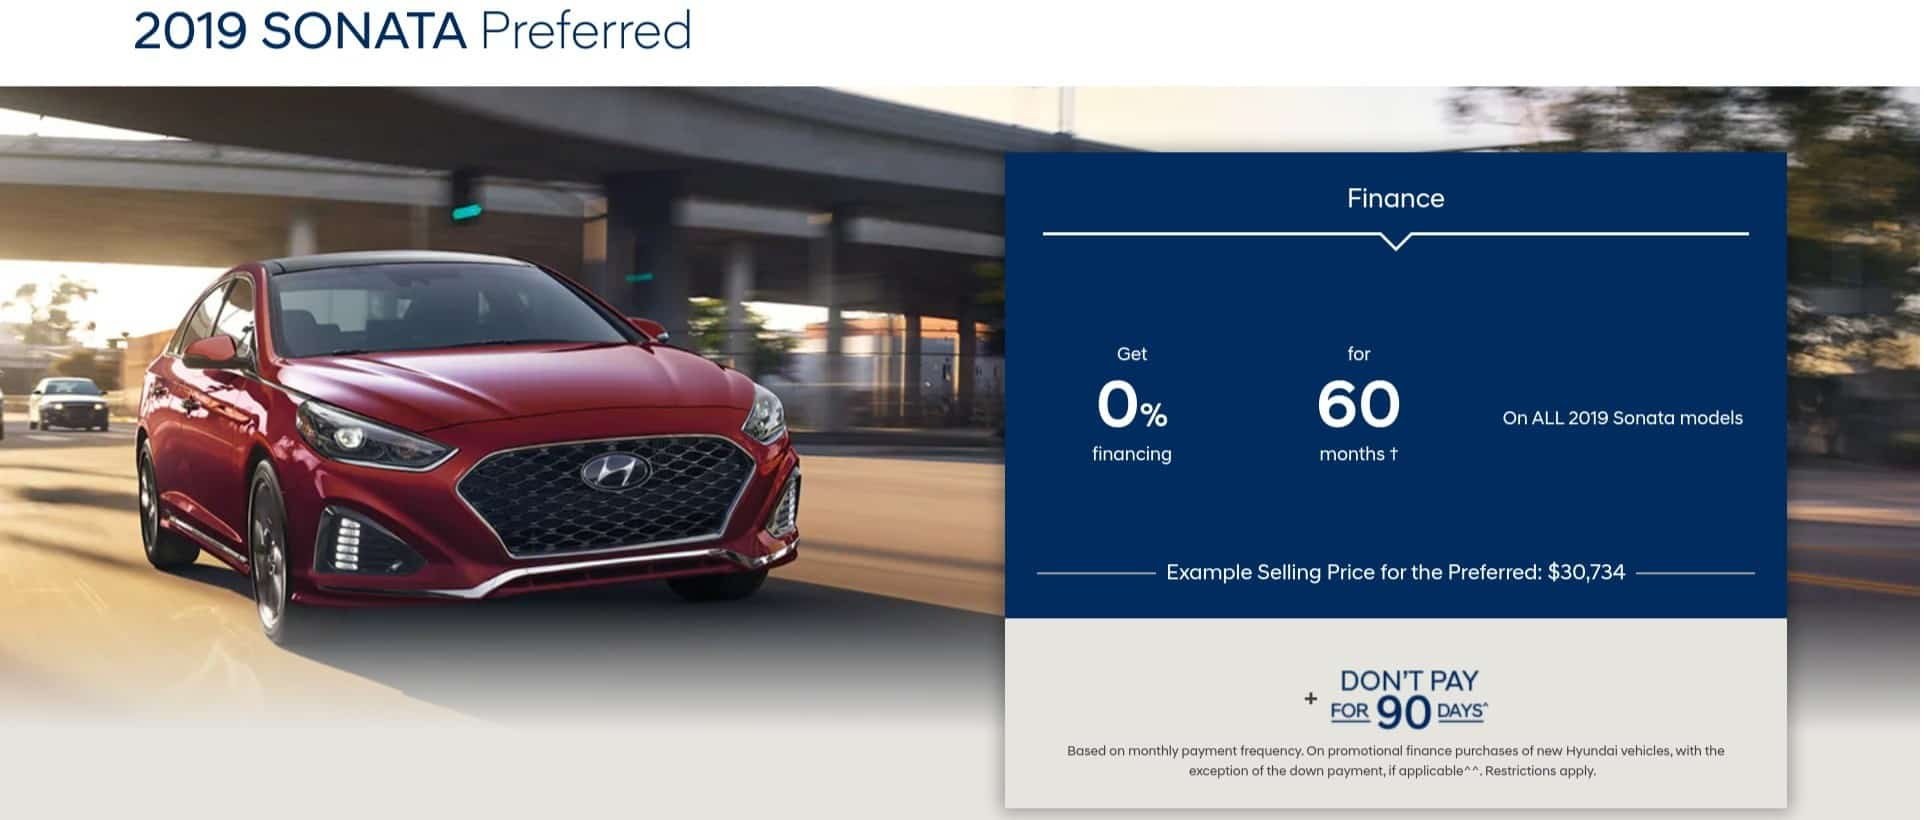 2019 Hyundai Sonata is one of the best new car deals in Canada